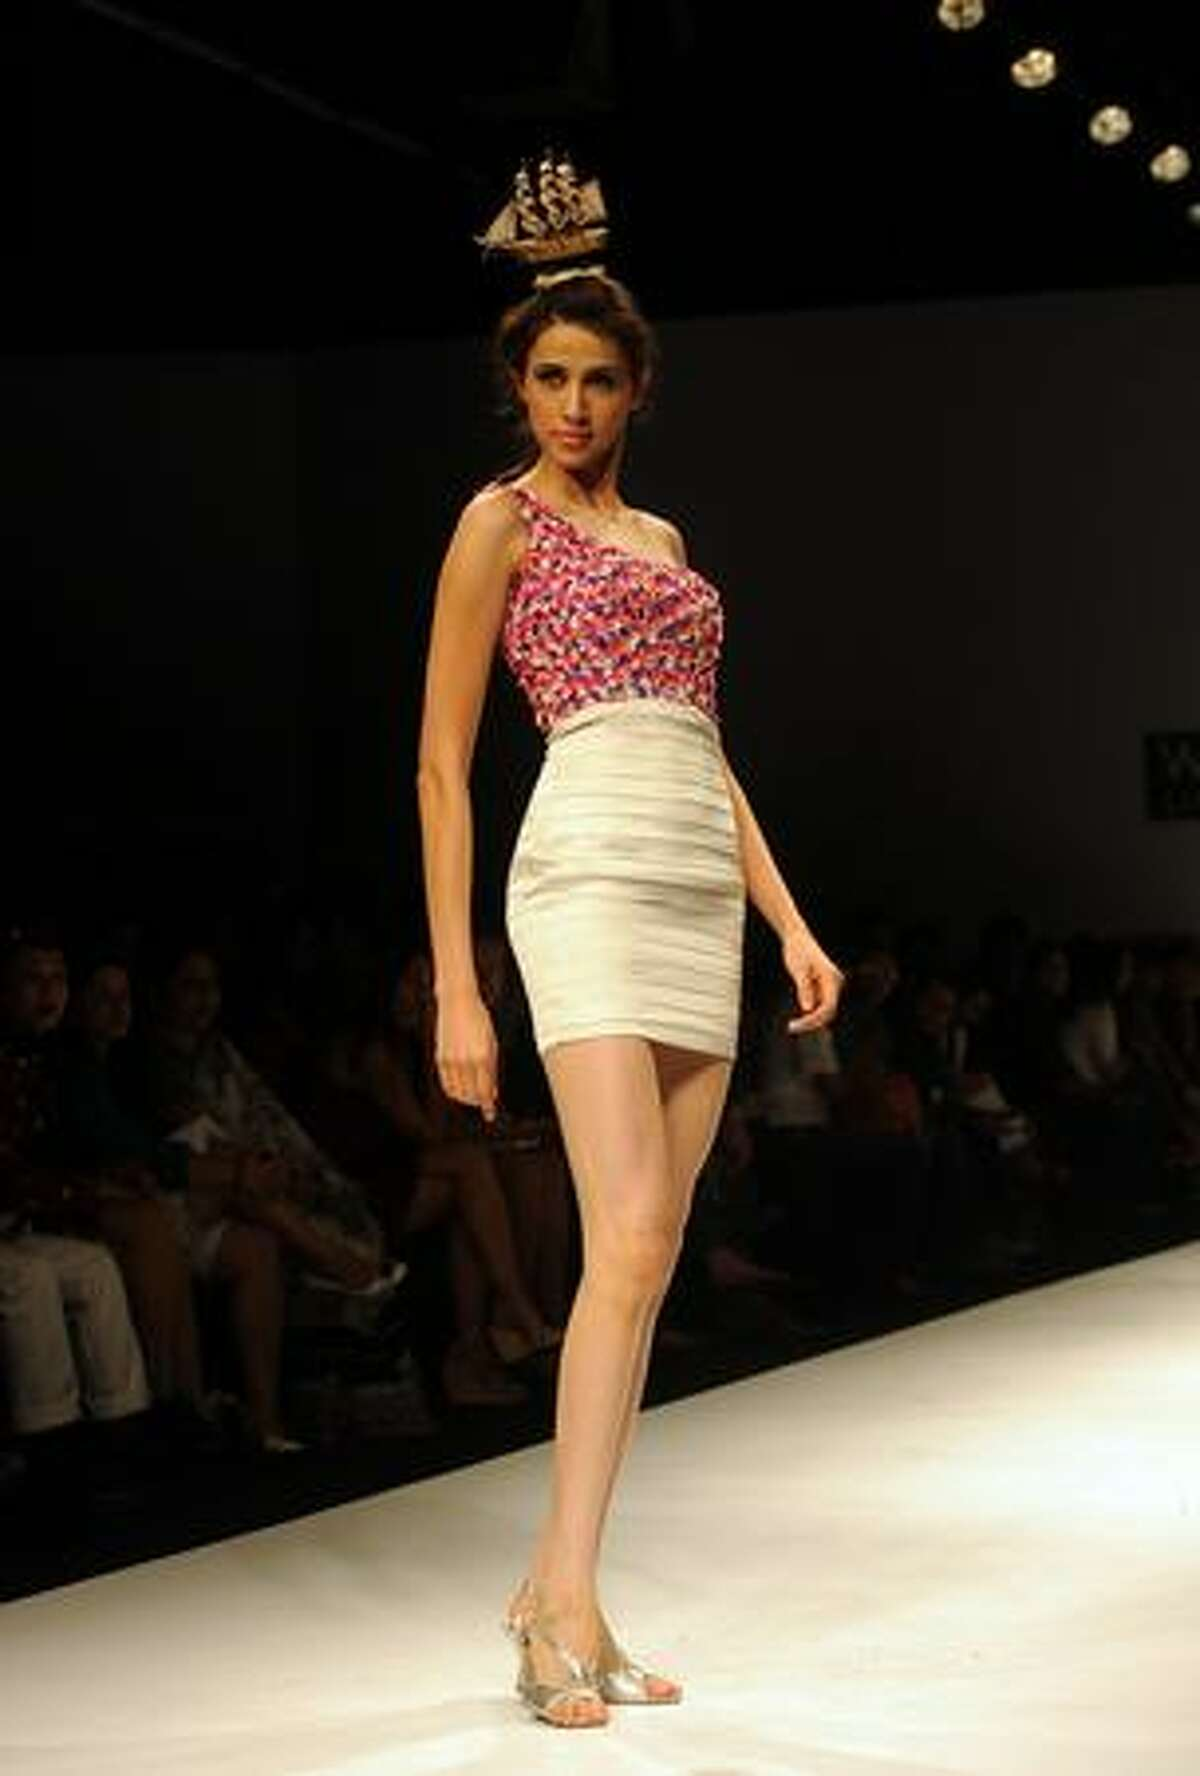 A model presents a creation by Indian designer Umesh Vashisht during the Wills India Fashion Week (WIFW) Spring Summer 2010 in New Delhi.